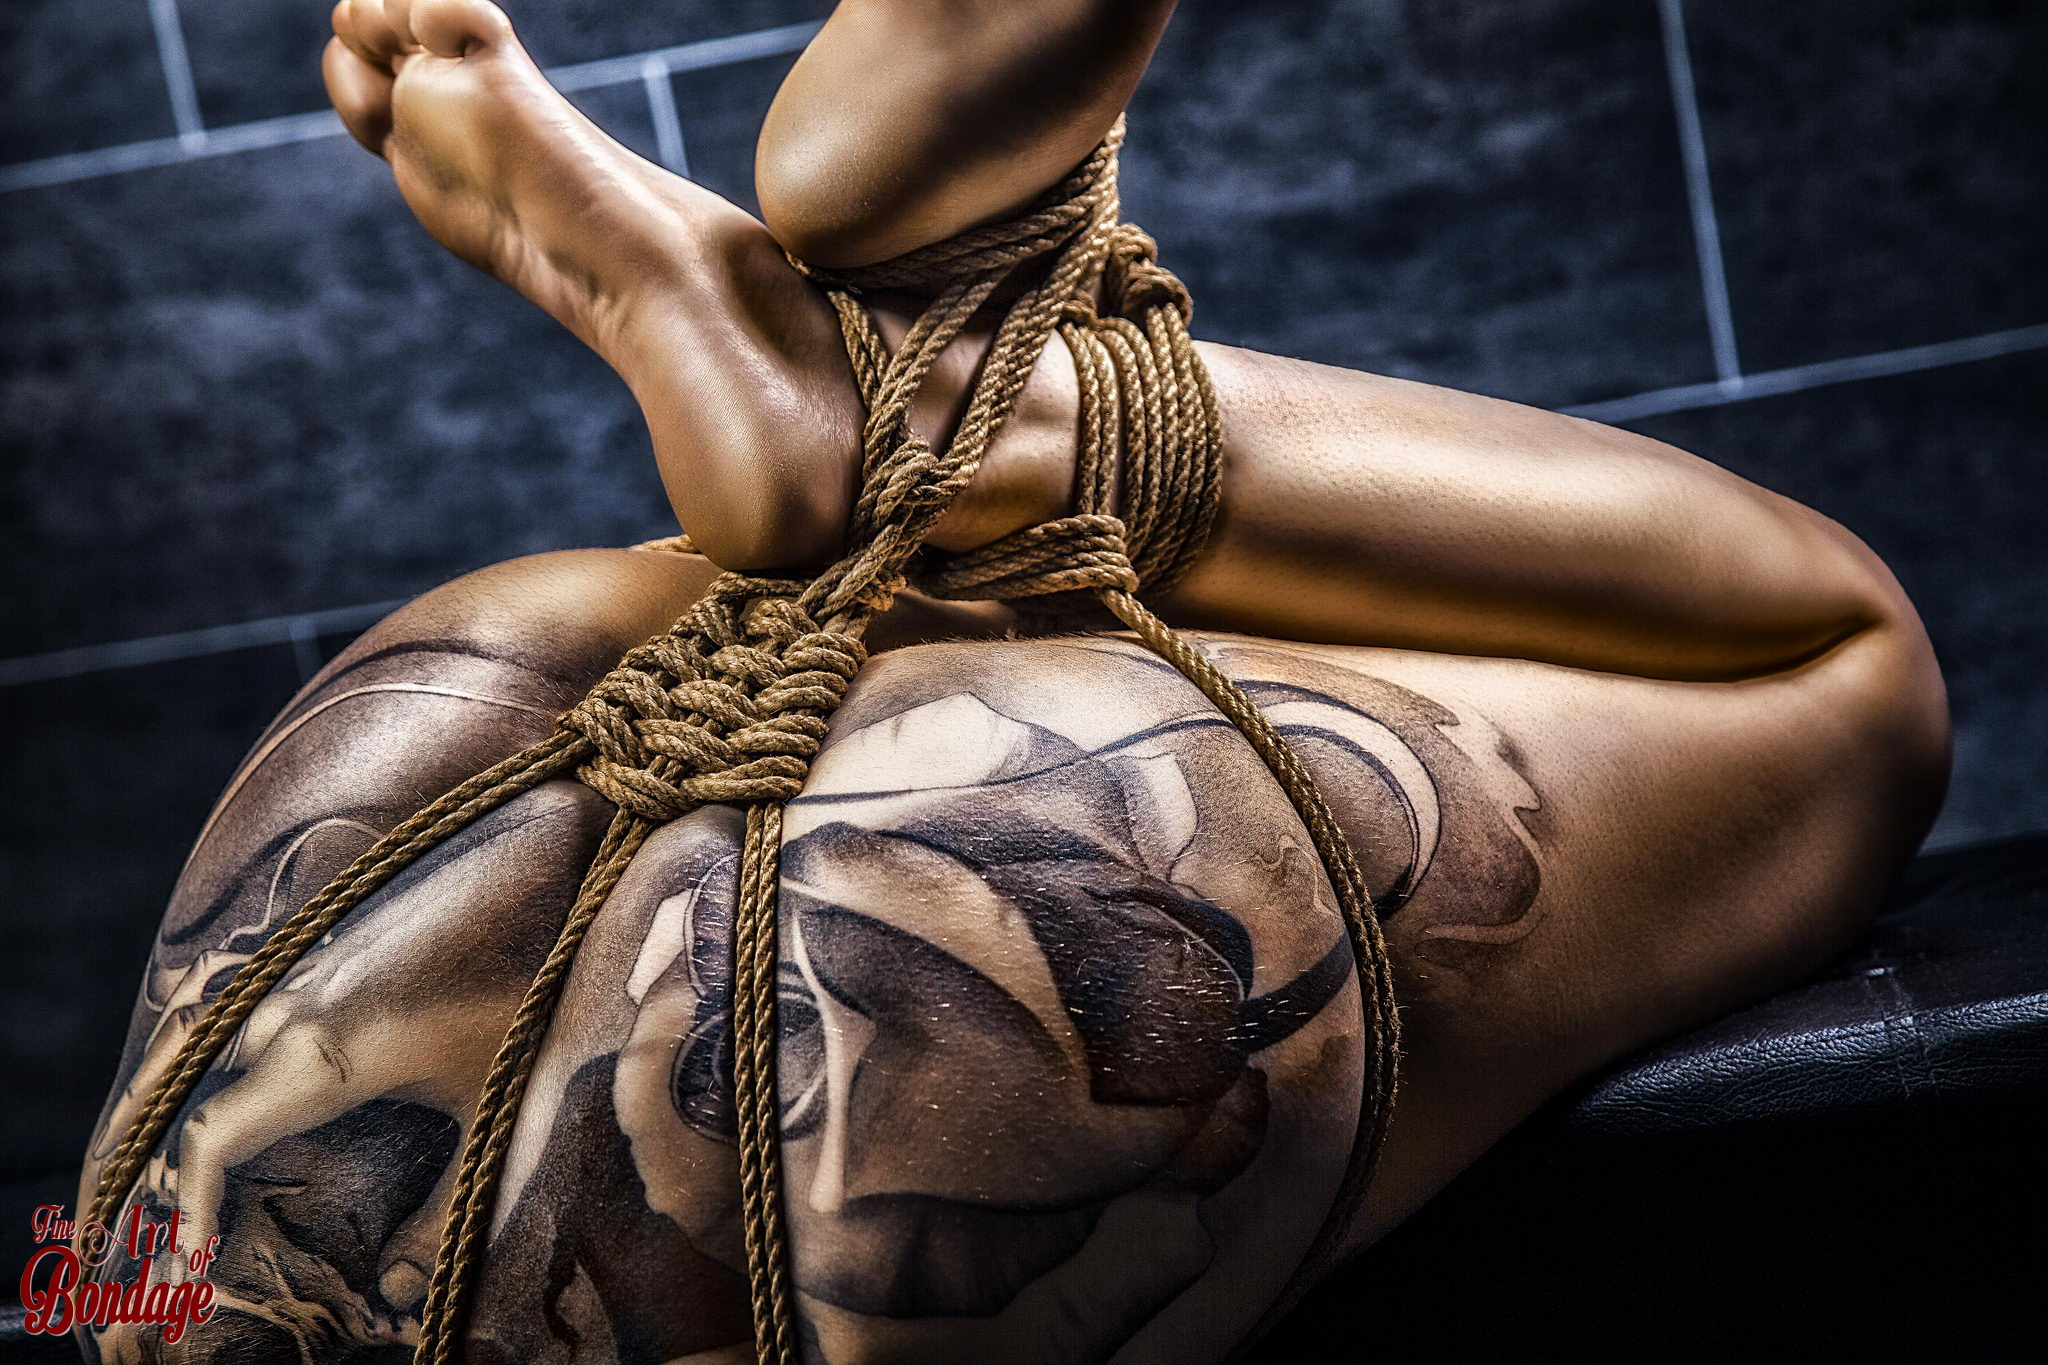 from Musa nude women in bondage